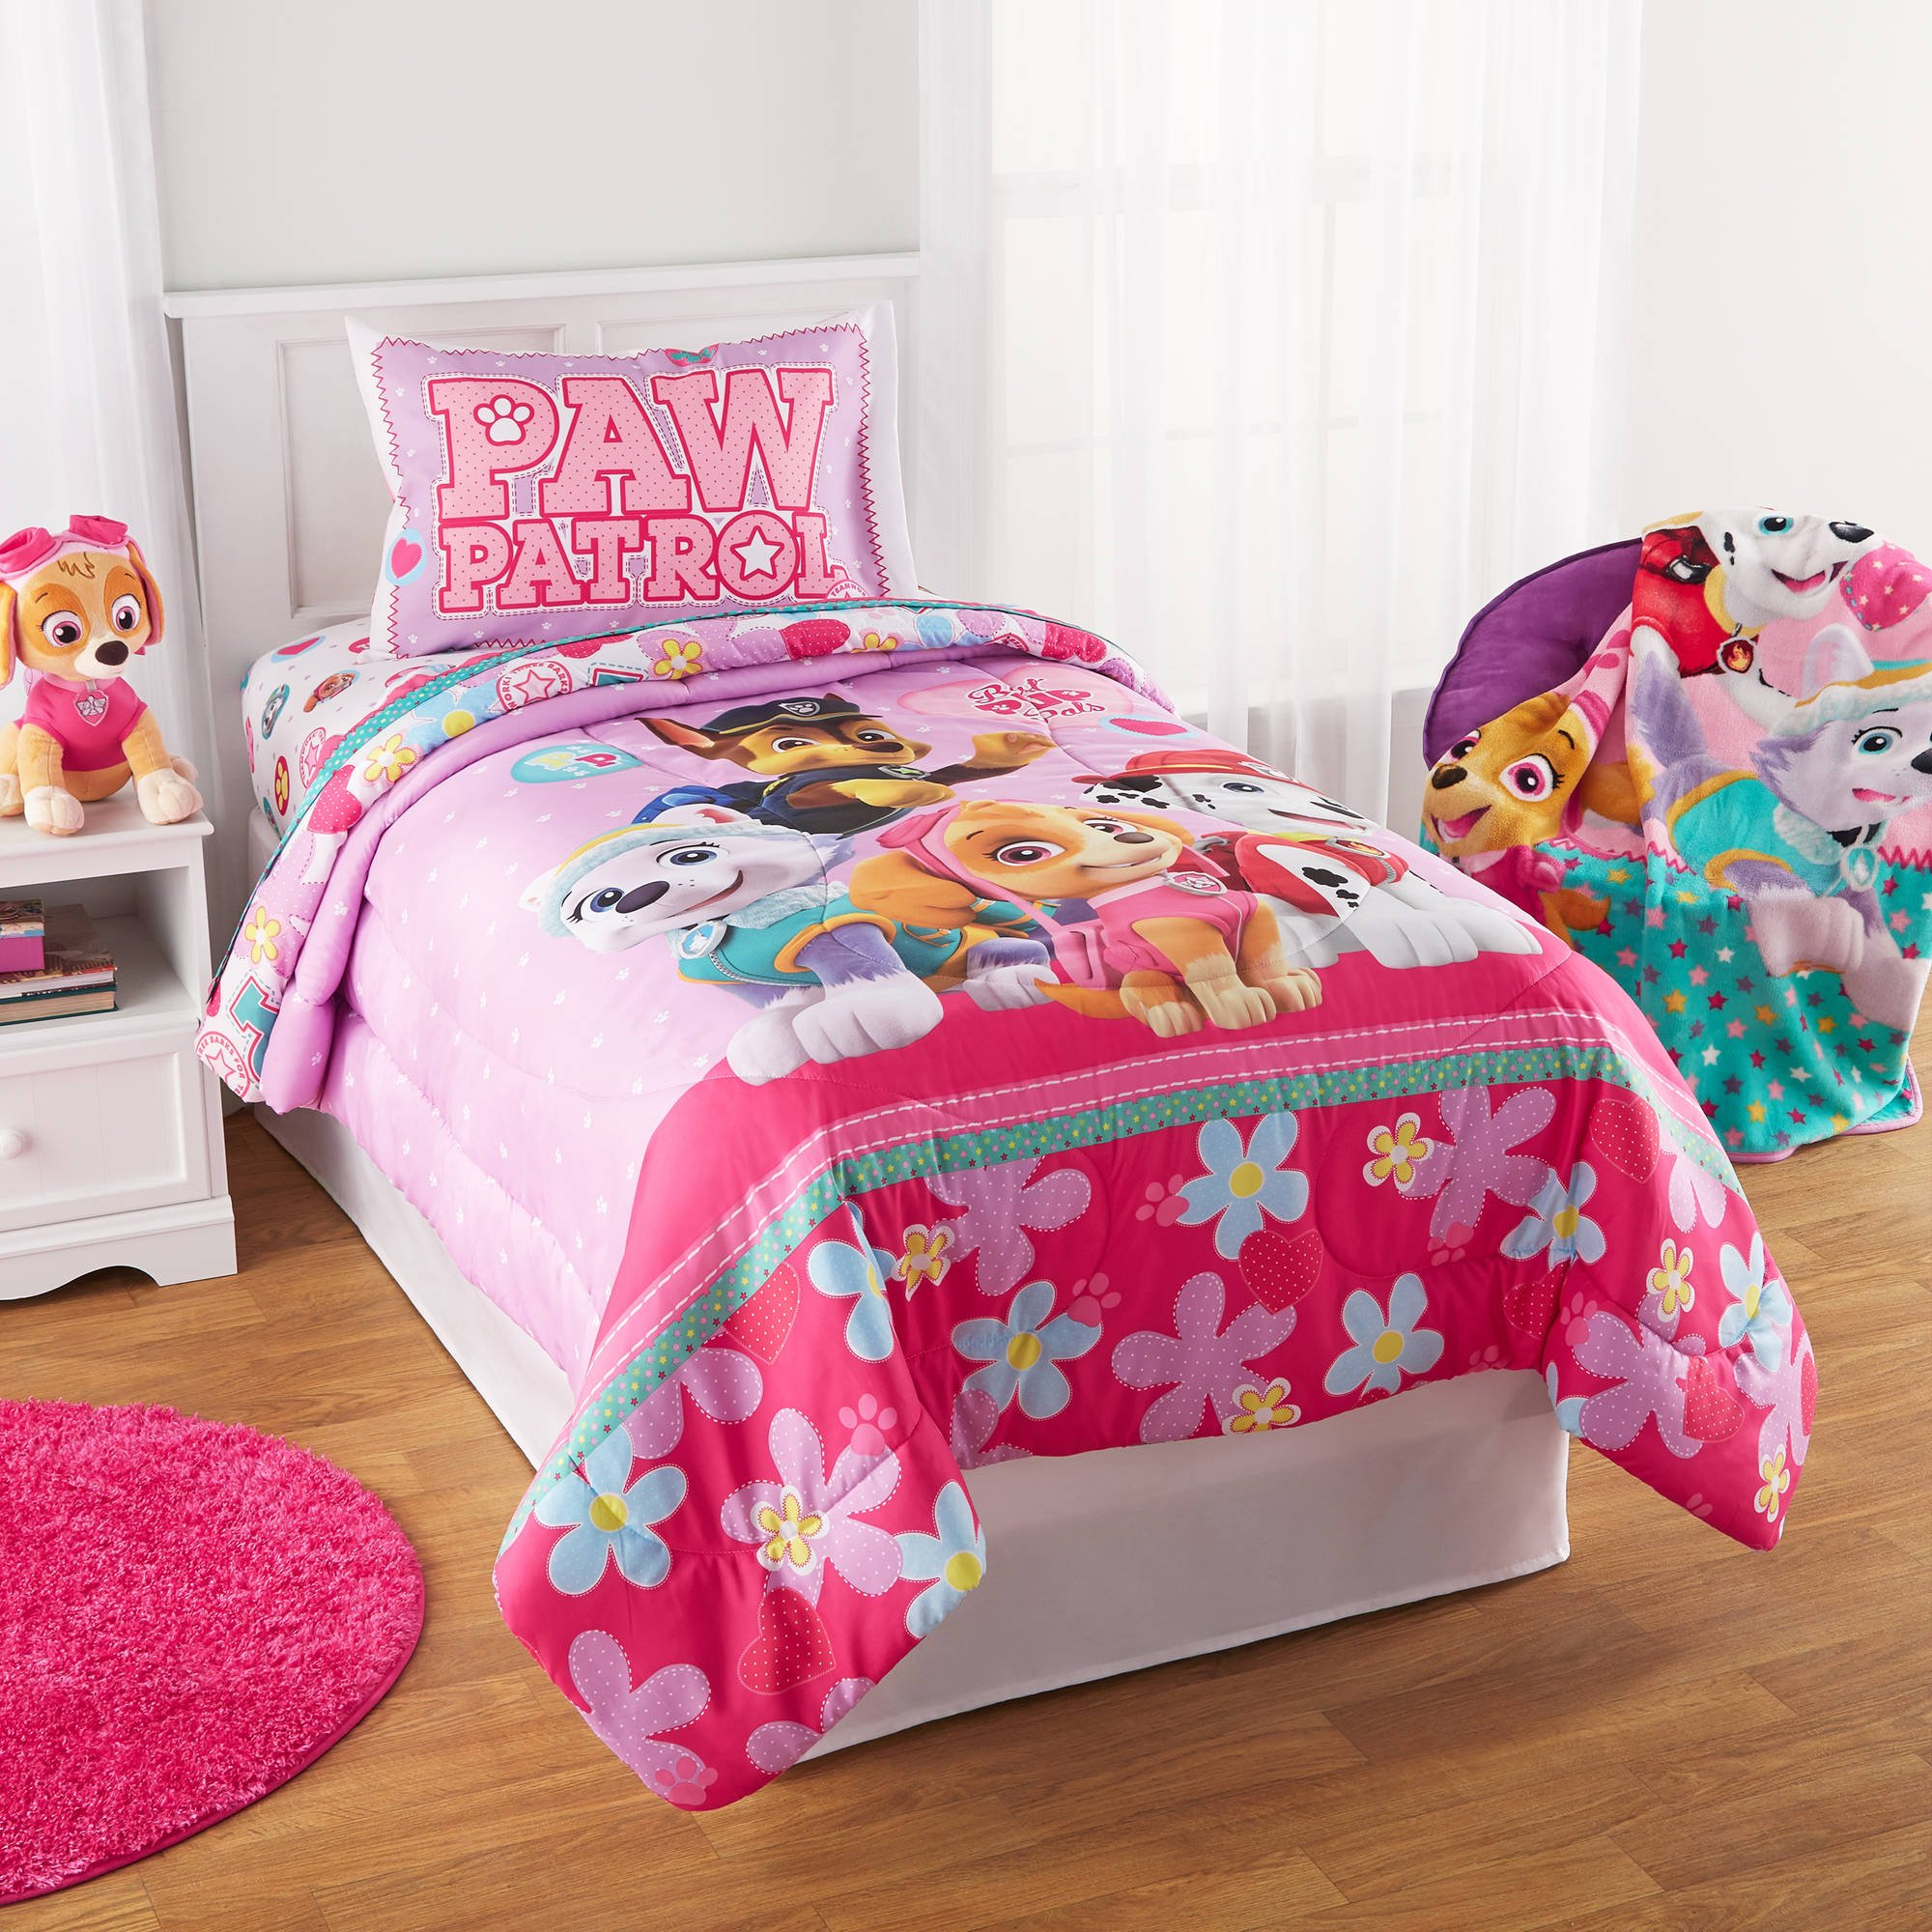 Paw Patrol Puppy Girls Pink Twin Comforter & Sheets (4 Piece Kids Bed In A Bag) + HOMEMADE WAX MELT